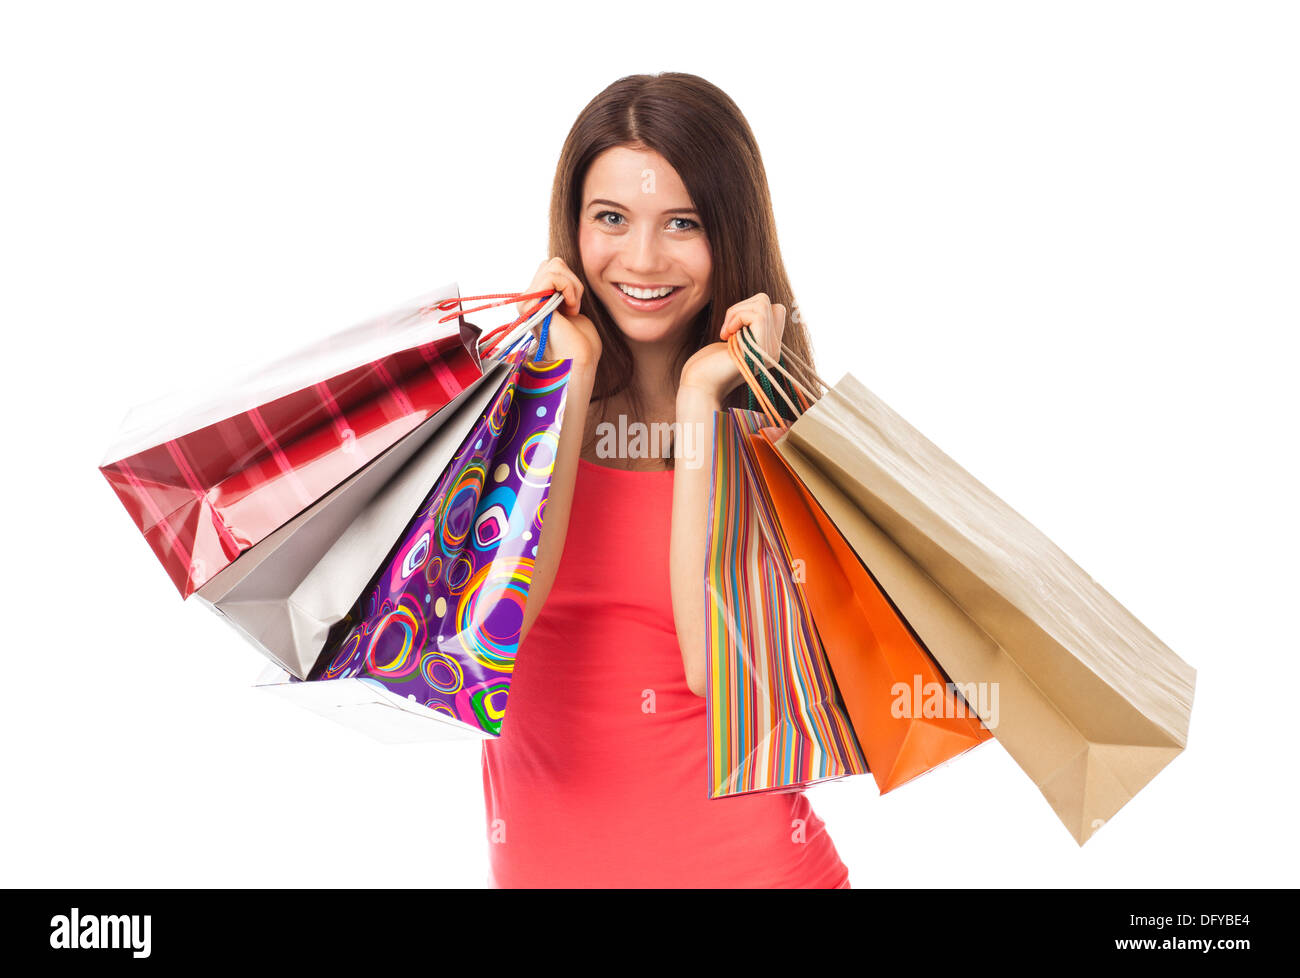 Portrait of a young woman holding shopping bags and smiling, isolated on white - Stock Image